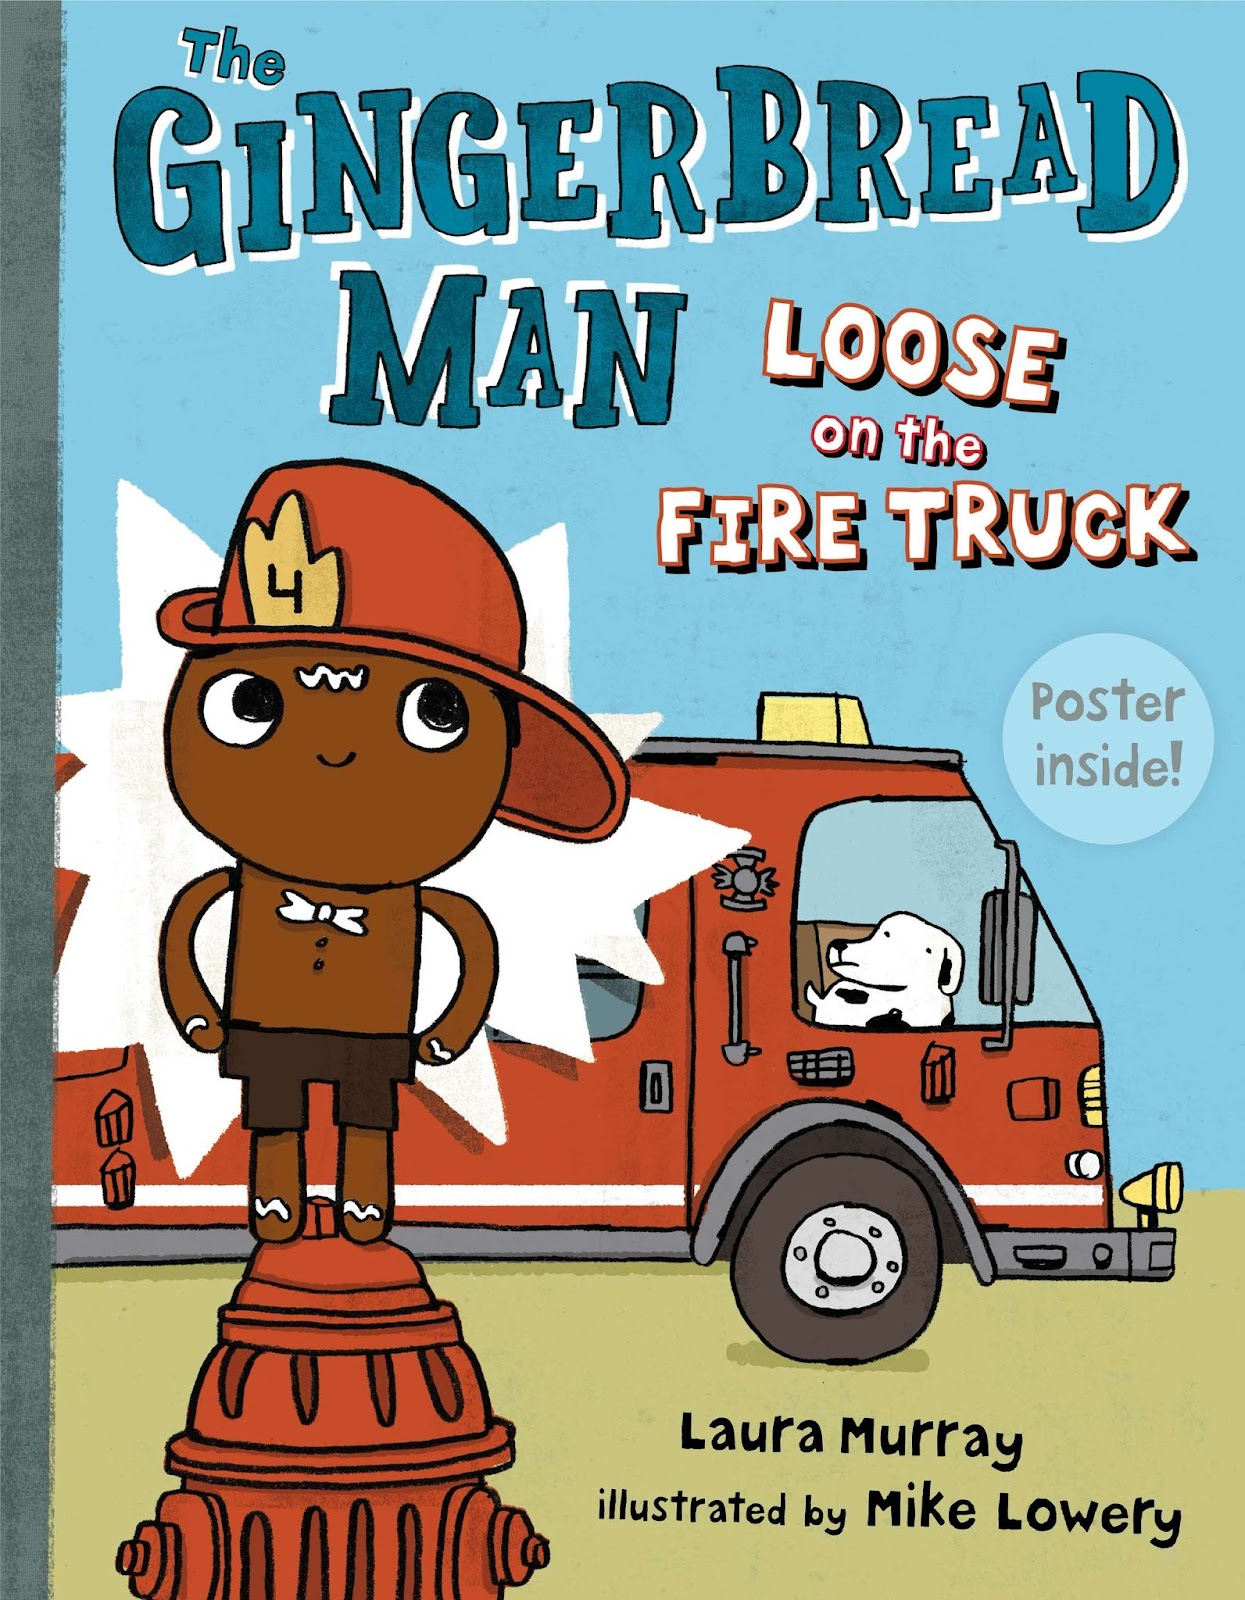 9780399257797_The_Gingerbread_Man_Loose_on_the_Fire_Truck.jpg